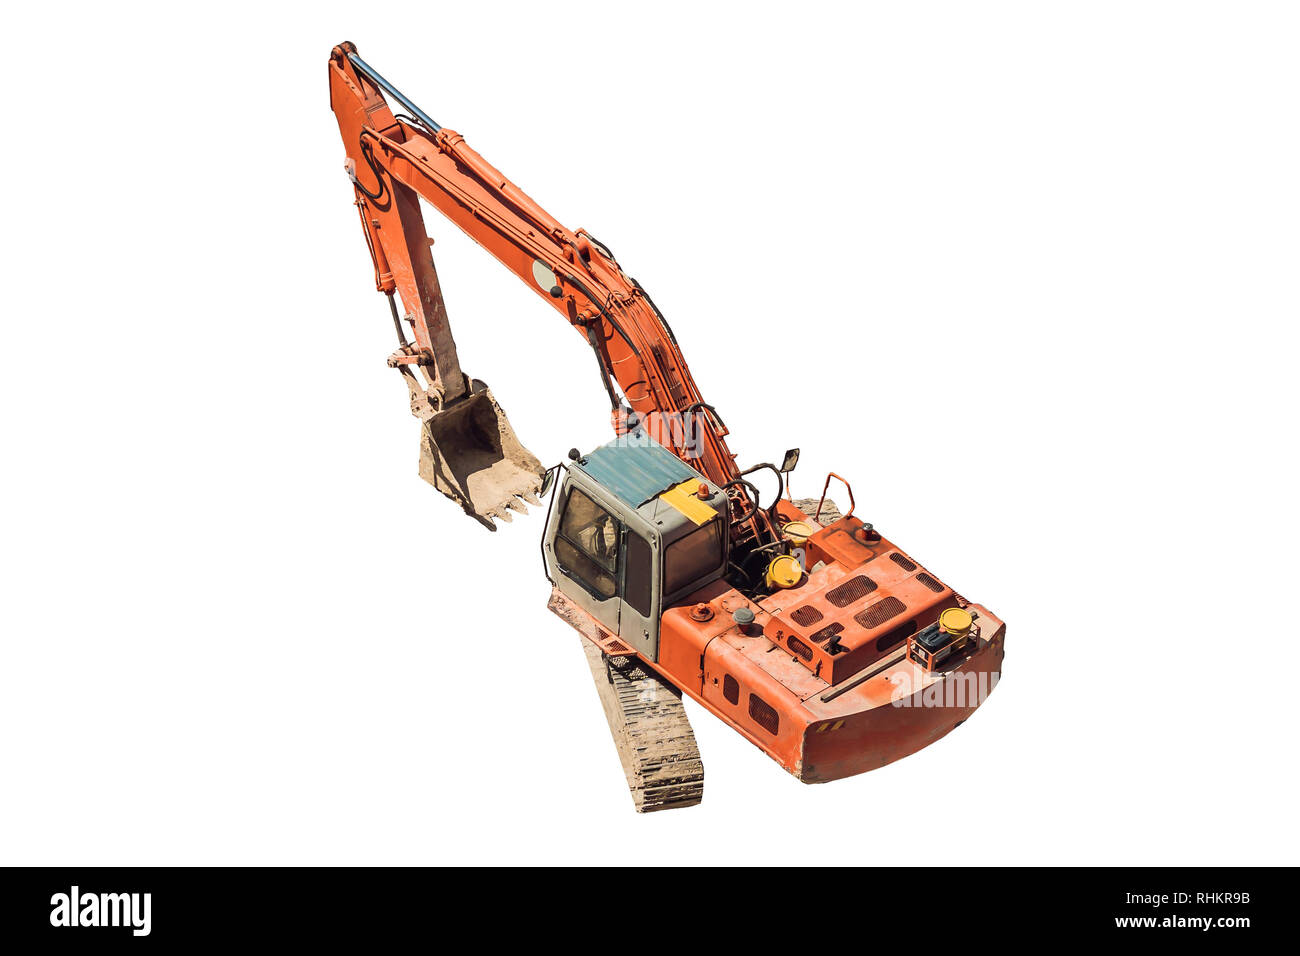 Yellow Excavator on Tracks Isolated on White. Side View of Front Hoe Loader. Industrial Vehicle. Construction Heavy Equipment Machine. Pneumatic Truck - Stock Image